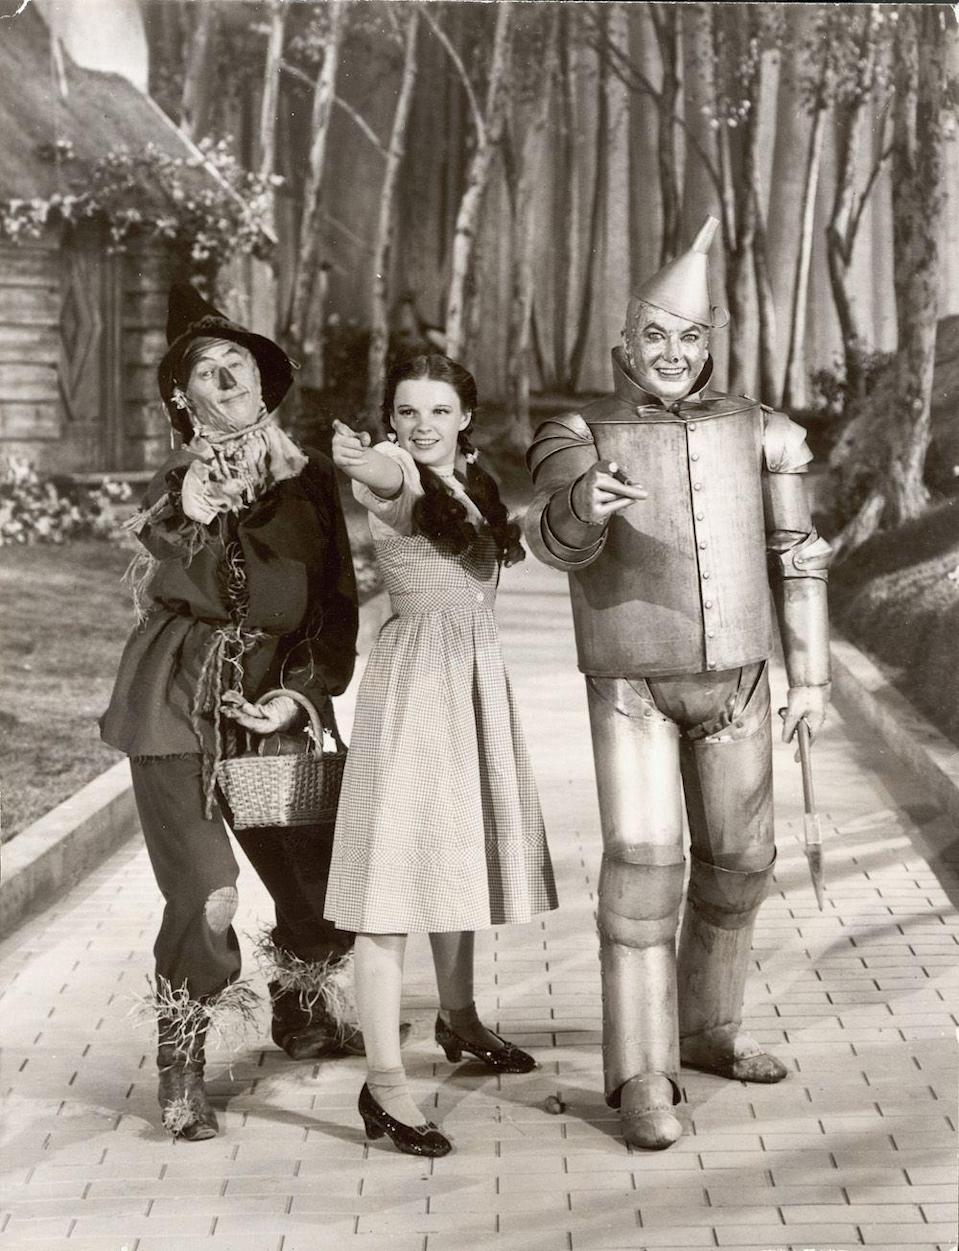 "<p>On November 3, <em>The Wizard of Oz</em> is shown on TV for the first time, introducing a new generation to the timeless classic. </p><p><em>RELATED: <a href=""https://www.goodhousekeeping.com/life/entertainment/g2715/wizard-of-oz-surprising-trivia/"" rel=""nofollow noopener"" target=""_blank"" data-ylk=""slk:34 Wonderfully Weird Facts About 'The Wizard of Oz'"" class=""link rapid-noclick-resp"">34 Wonderfully Weird Facts About 'The Wizard of Oz'</a></em></p>"